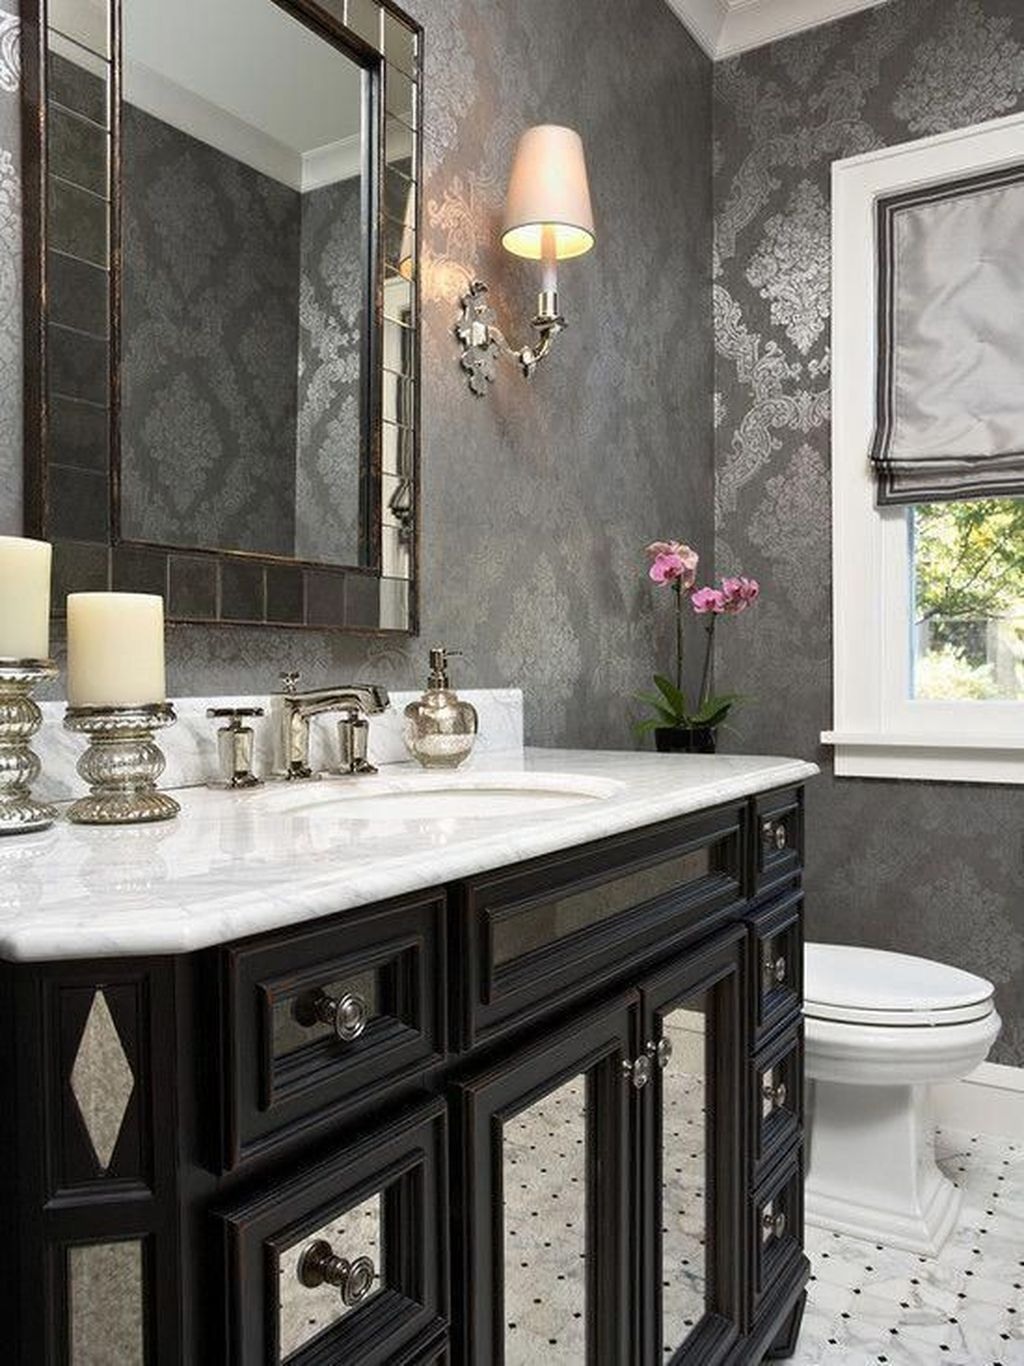 Inspiring Black Powder Room Design Ideas With Modern Style 09